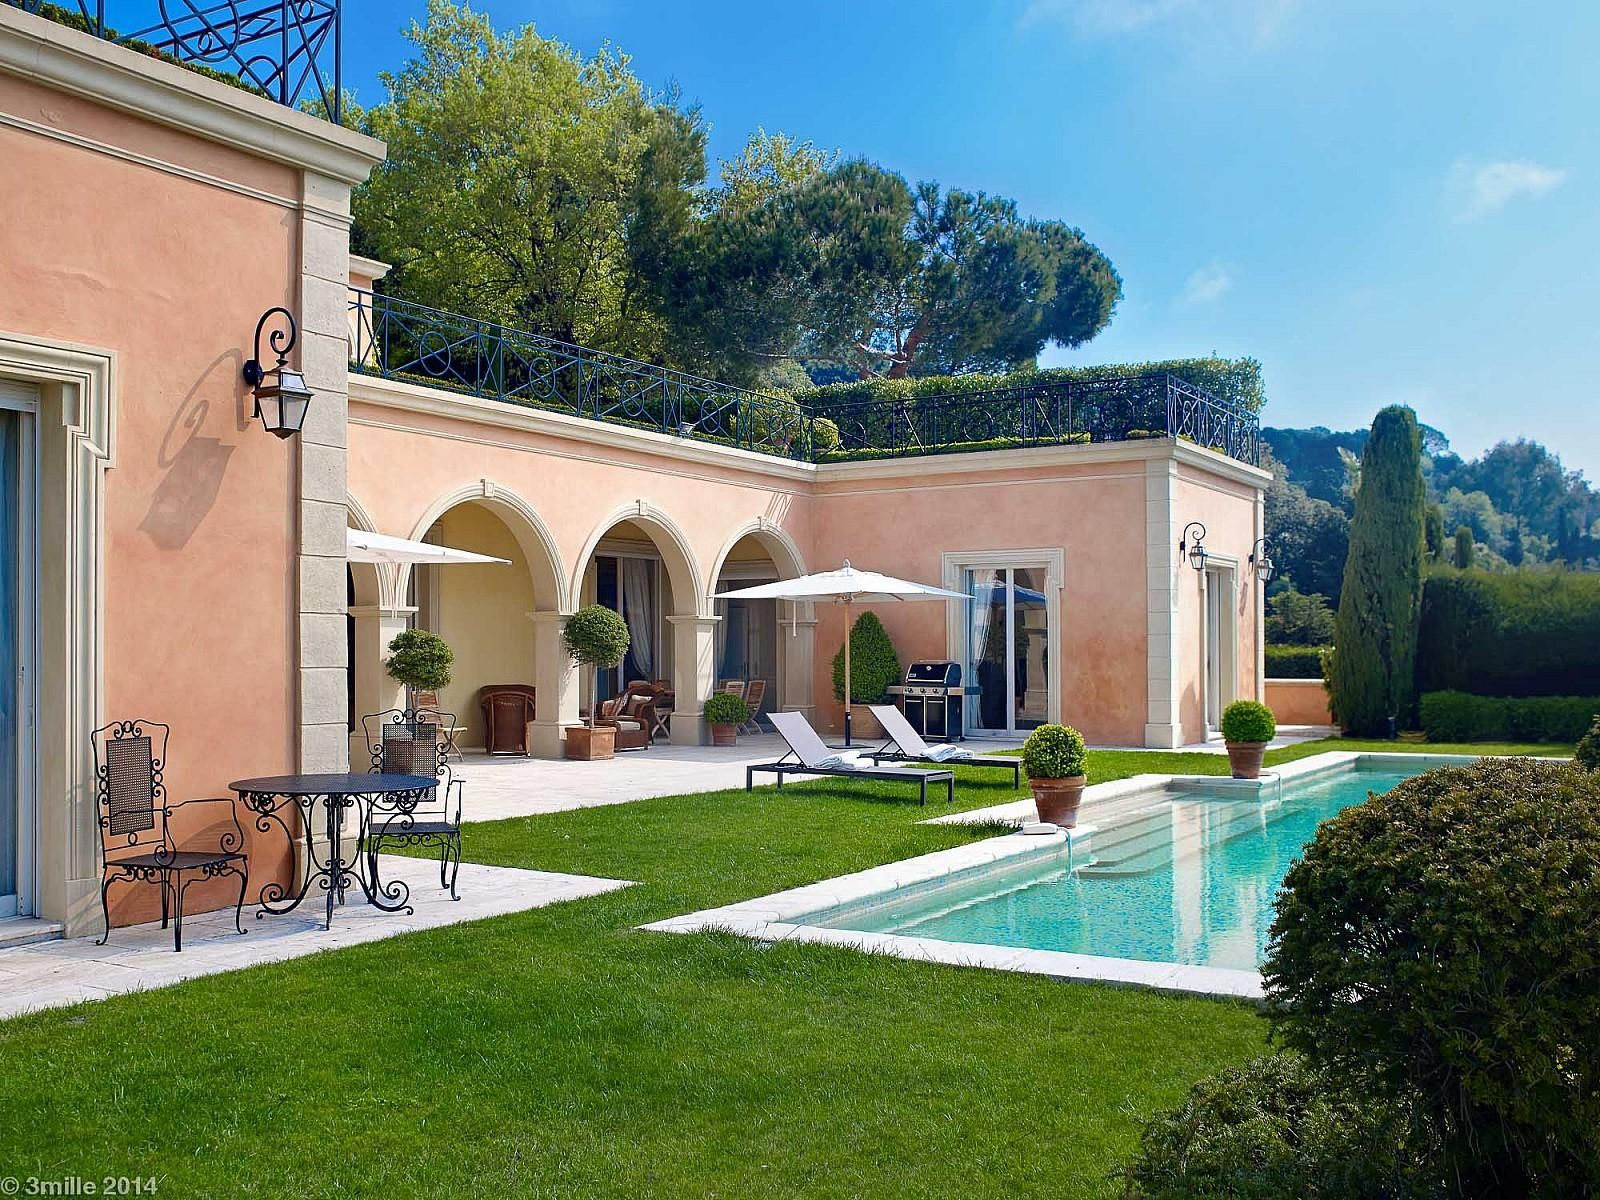 Situated in one of the most desirable domain in #Cannes #Californie, this luxurious Toscan style #villa enjoys breathtaking views of the bay of Cannes and the Esterel Mountains.  http://www.palm-properties.com/californie-somptuous-villa-lv0059cn.html